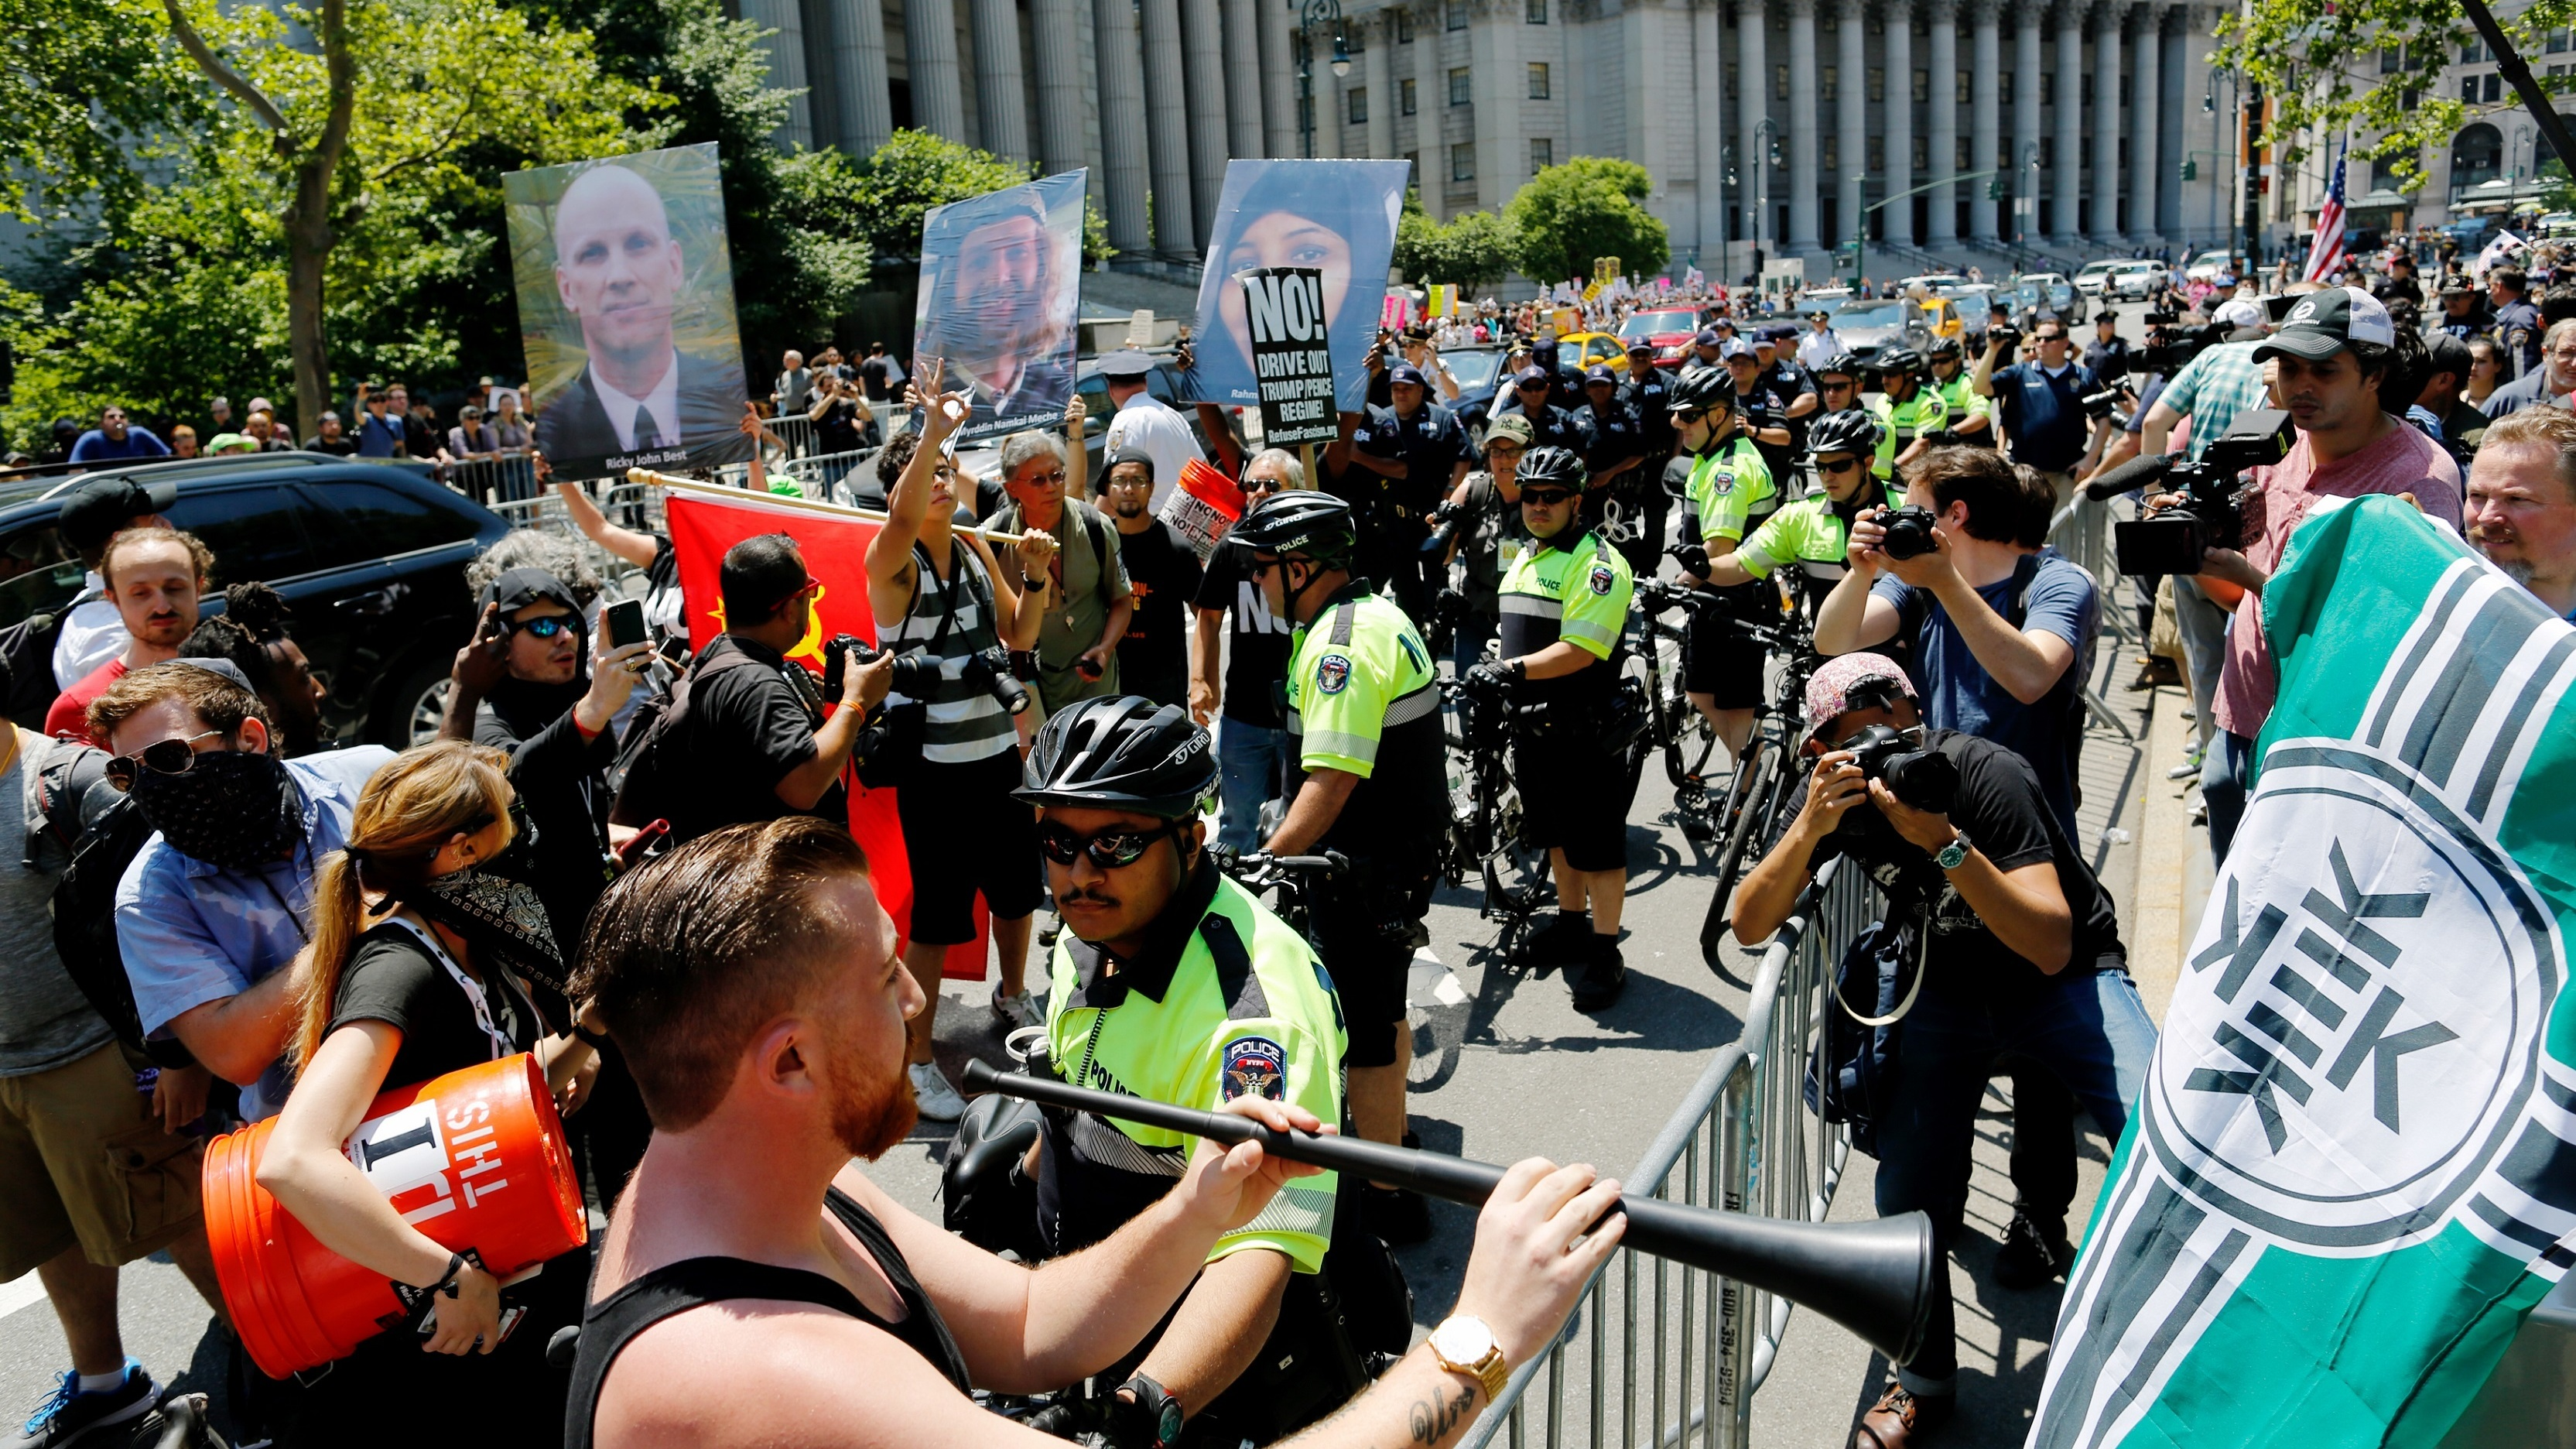 NYPD officers try to separate counter-protesters and activists rallying for the